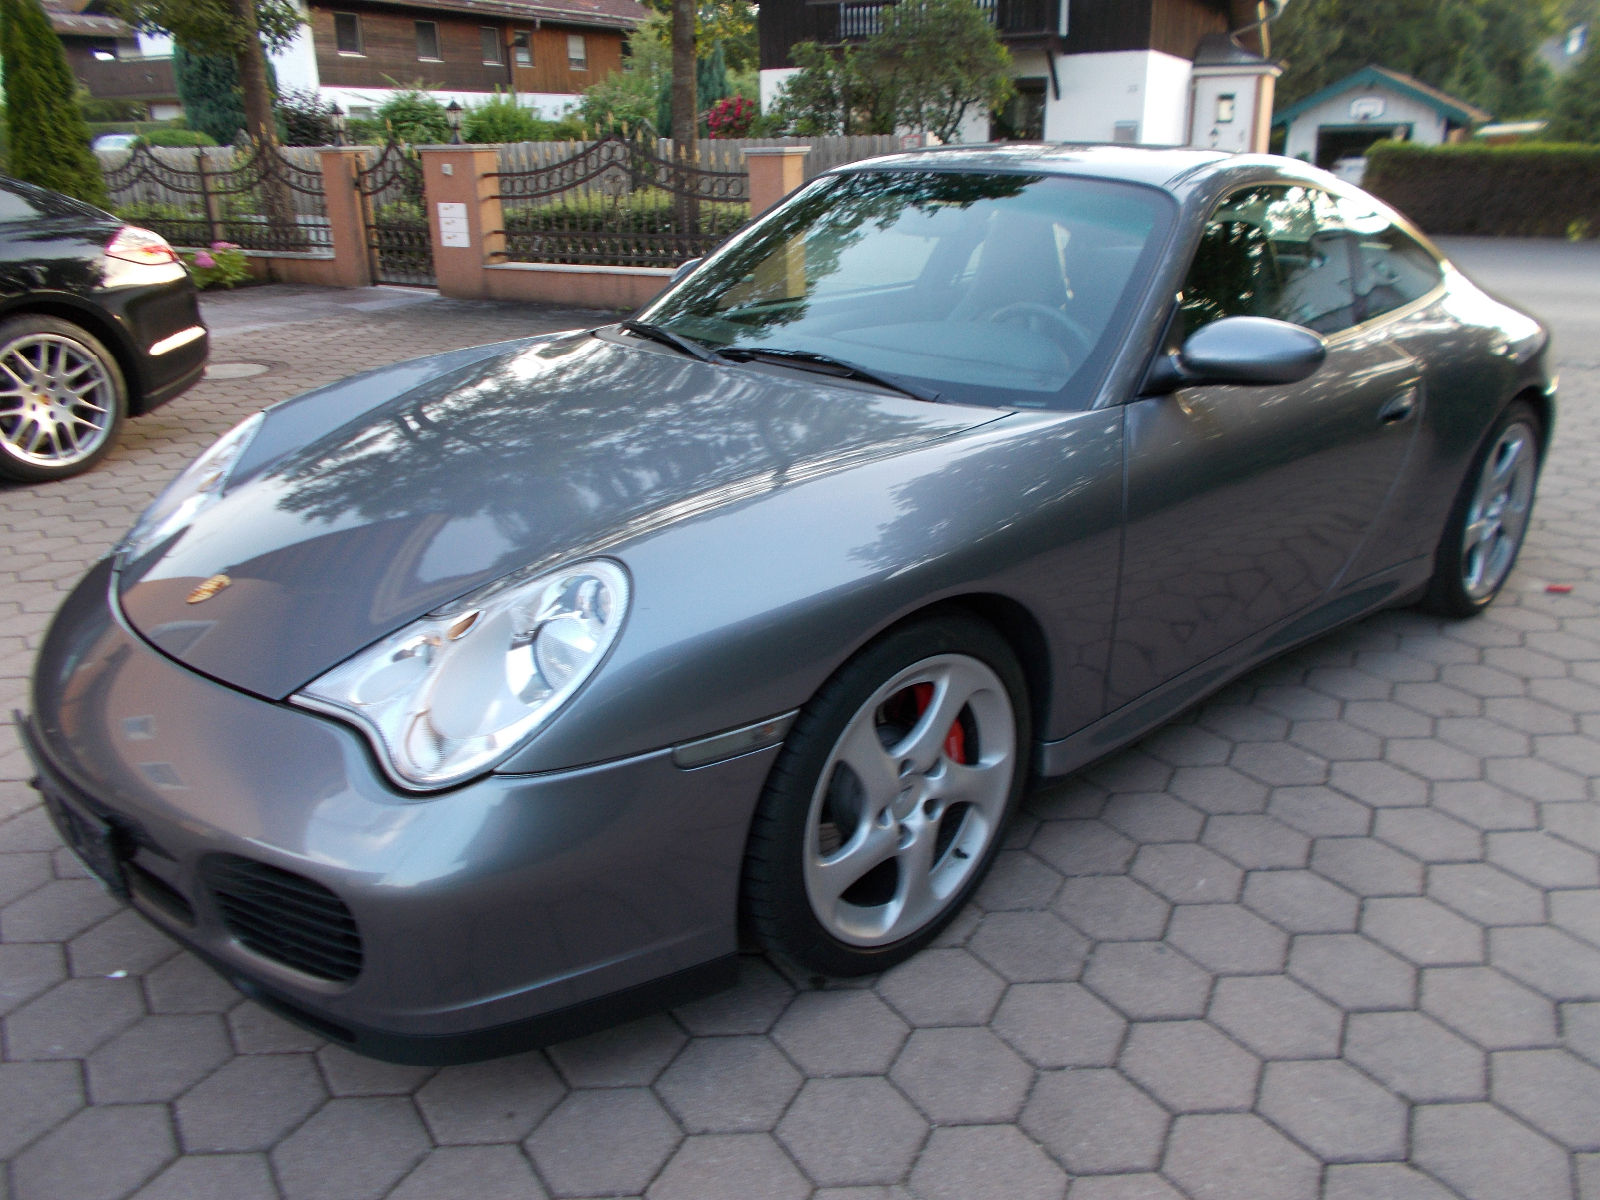 PORSCHE 911 996 CARRERA 4S COUPE